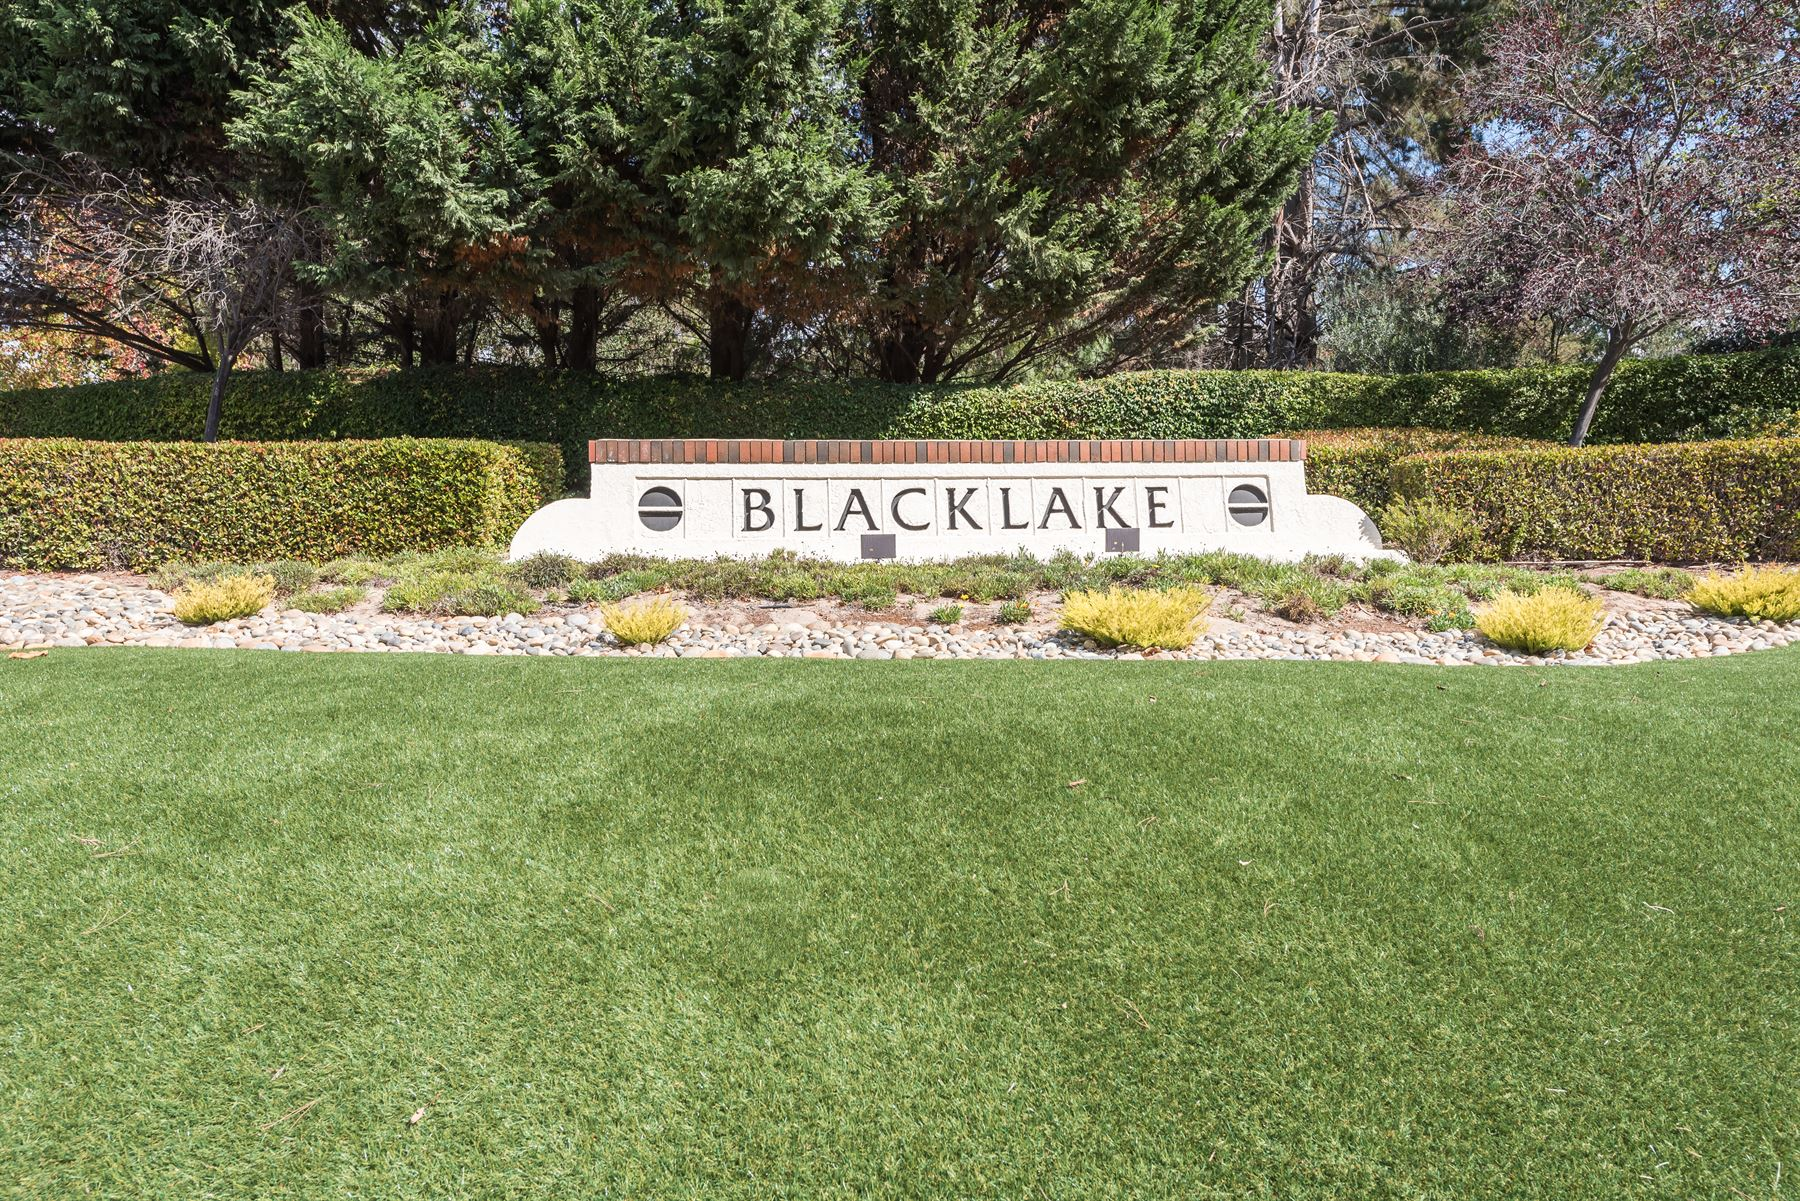 Golfer's Getaway - Exterior - Sign for BlackLake community